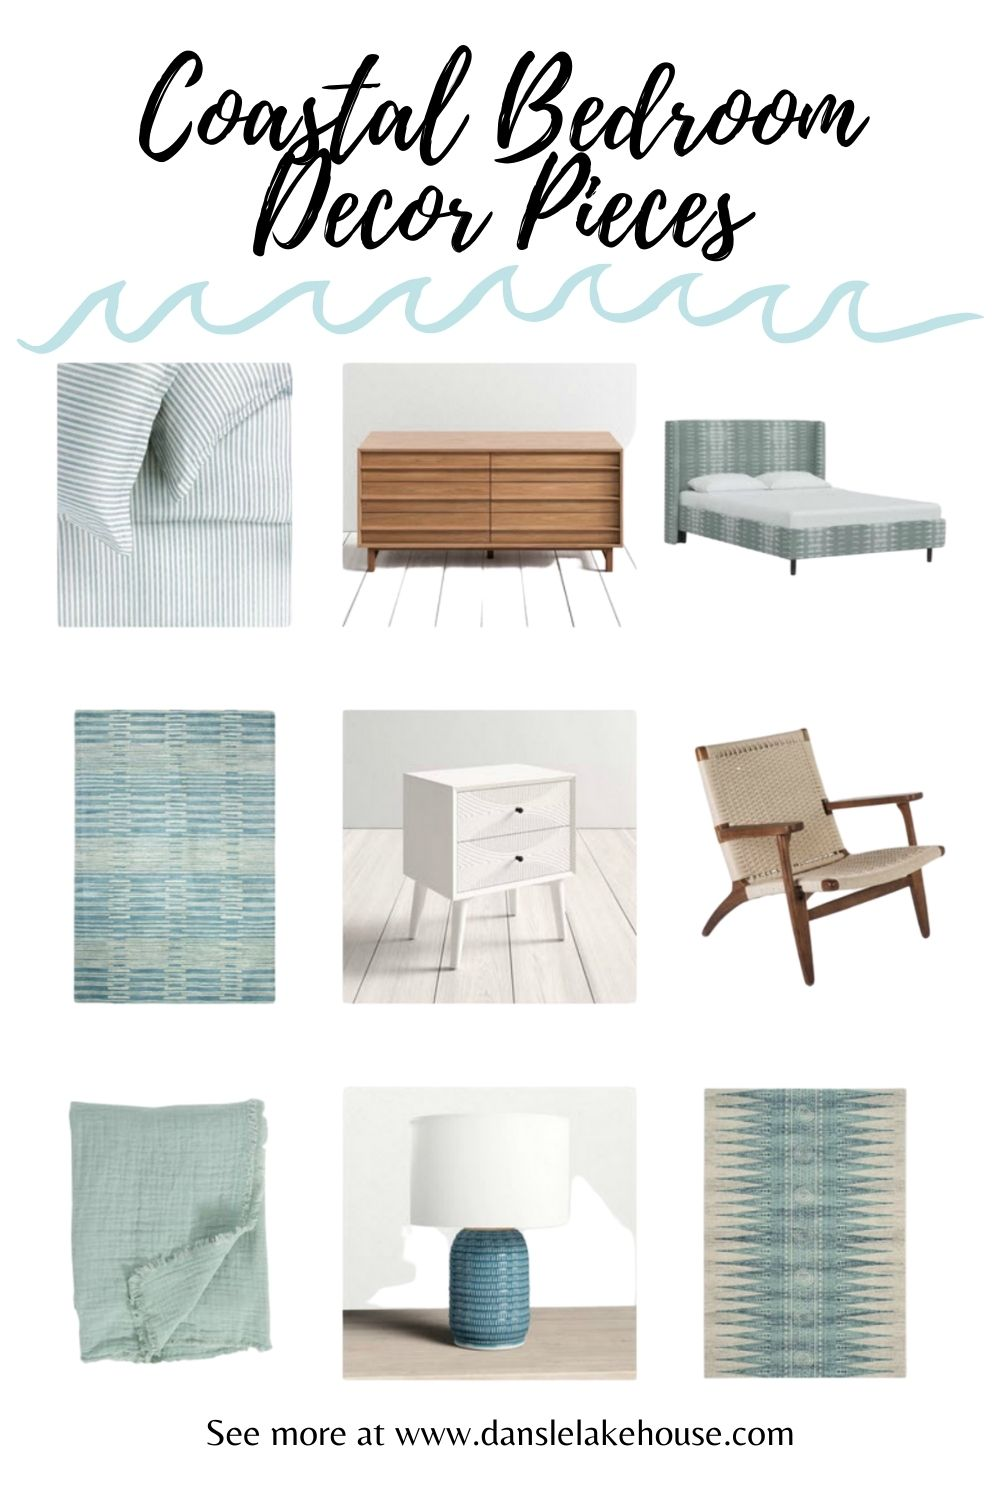 Coastal Bedroom Decor Pieces